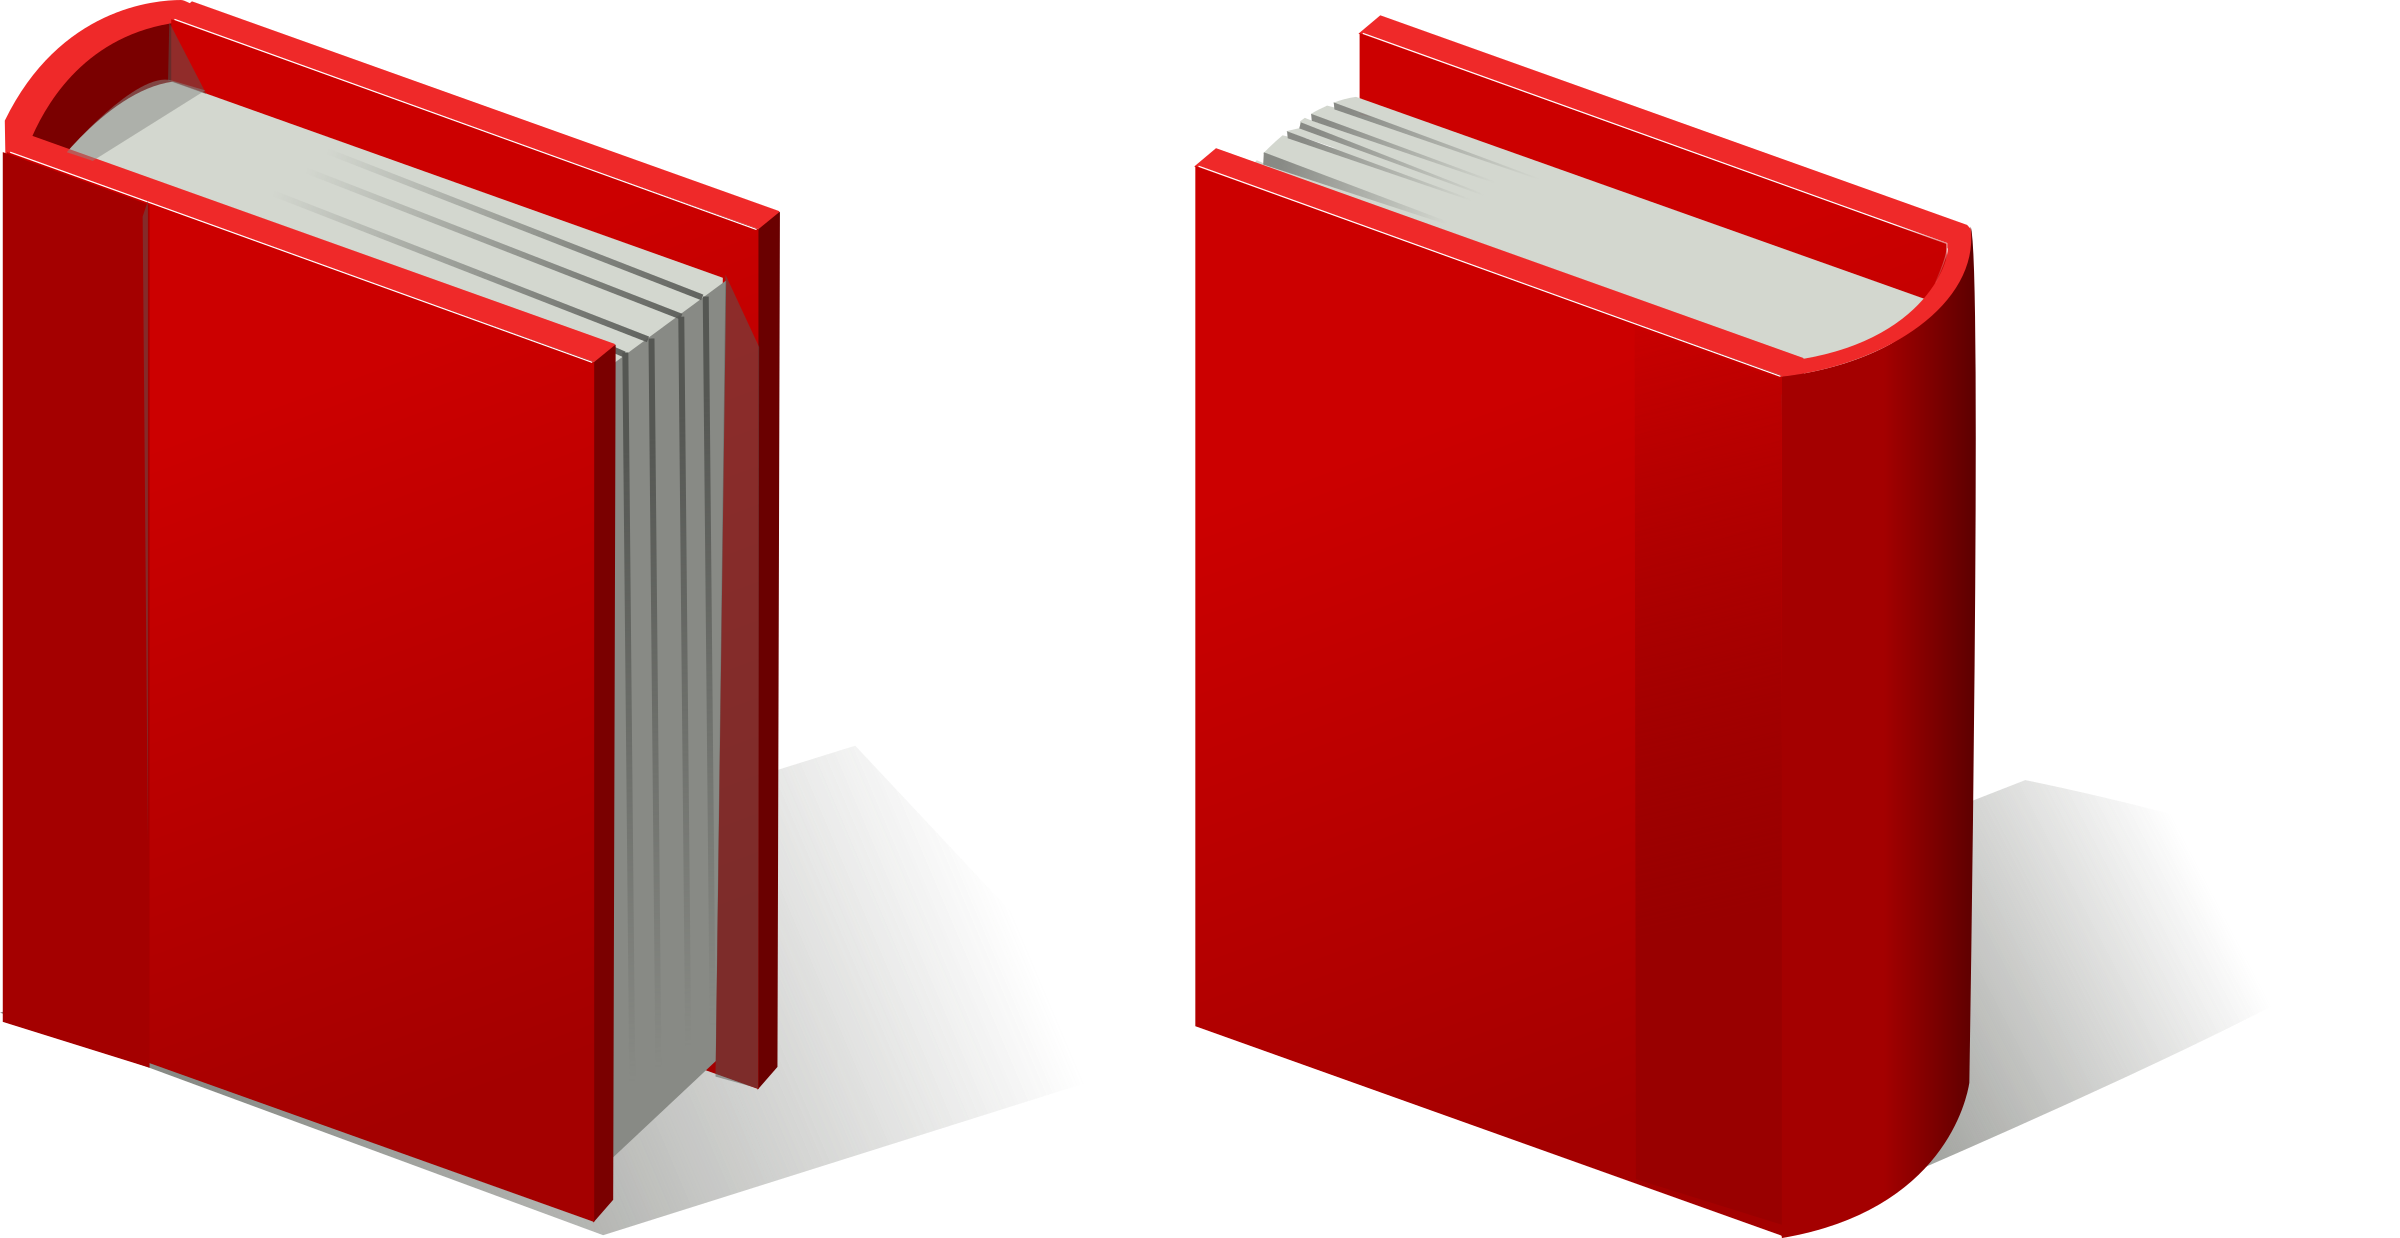 pair of red books by rg1024